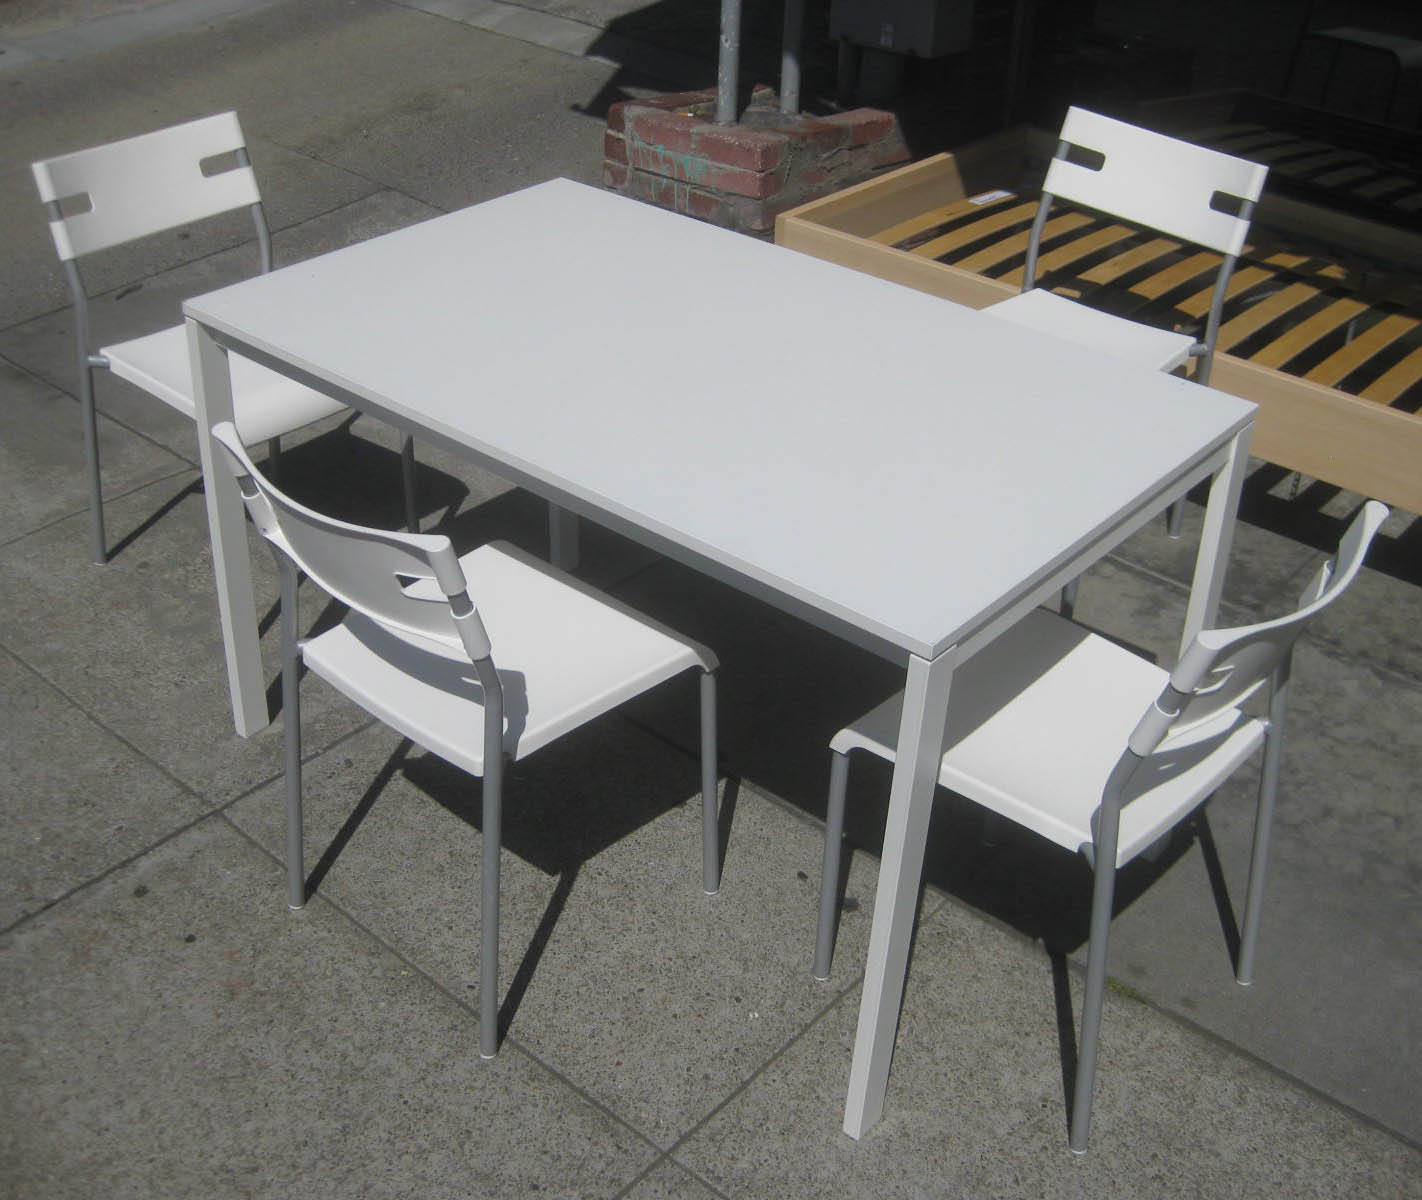 Uhuru Furniture Collectibles Sold Ikea Table And Four Chairs 50